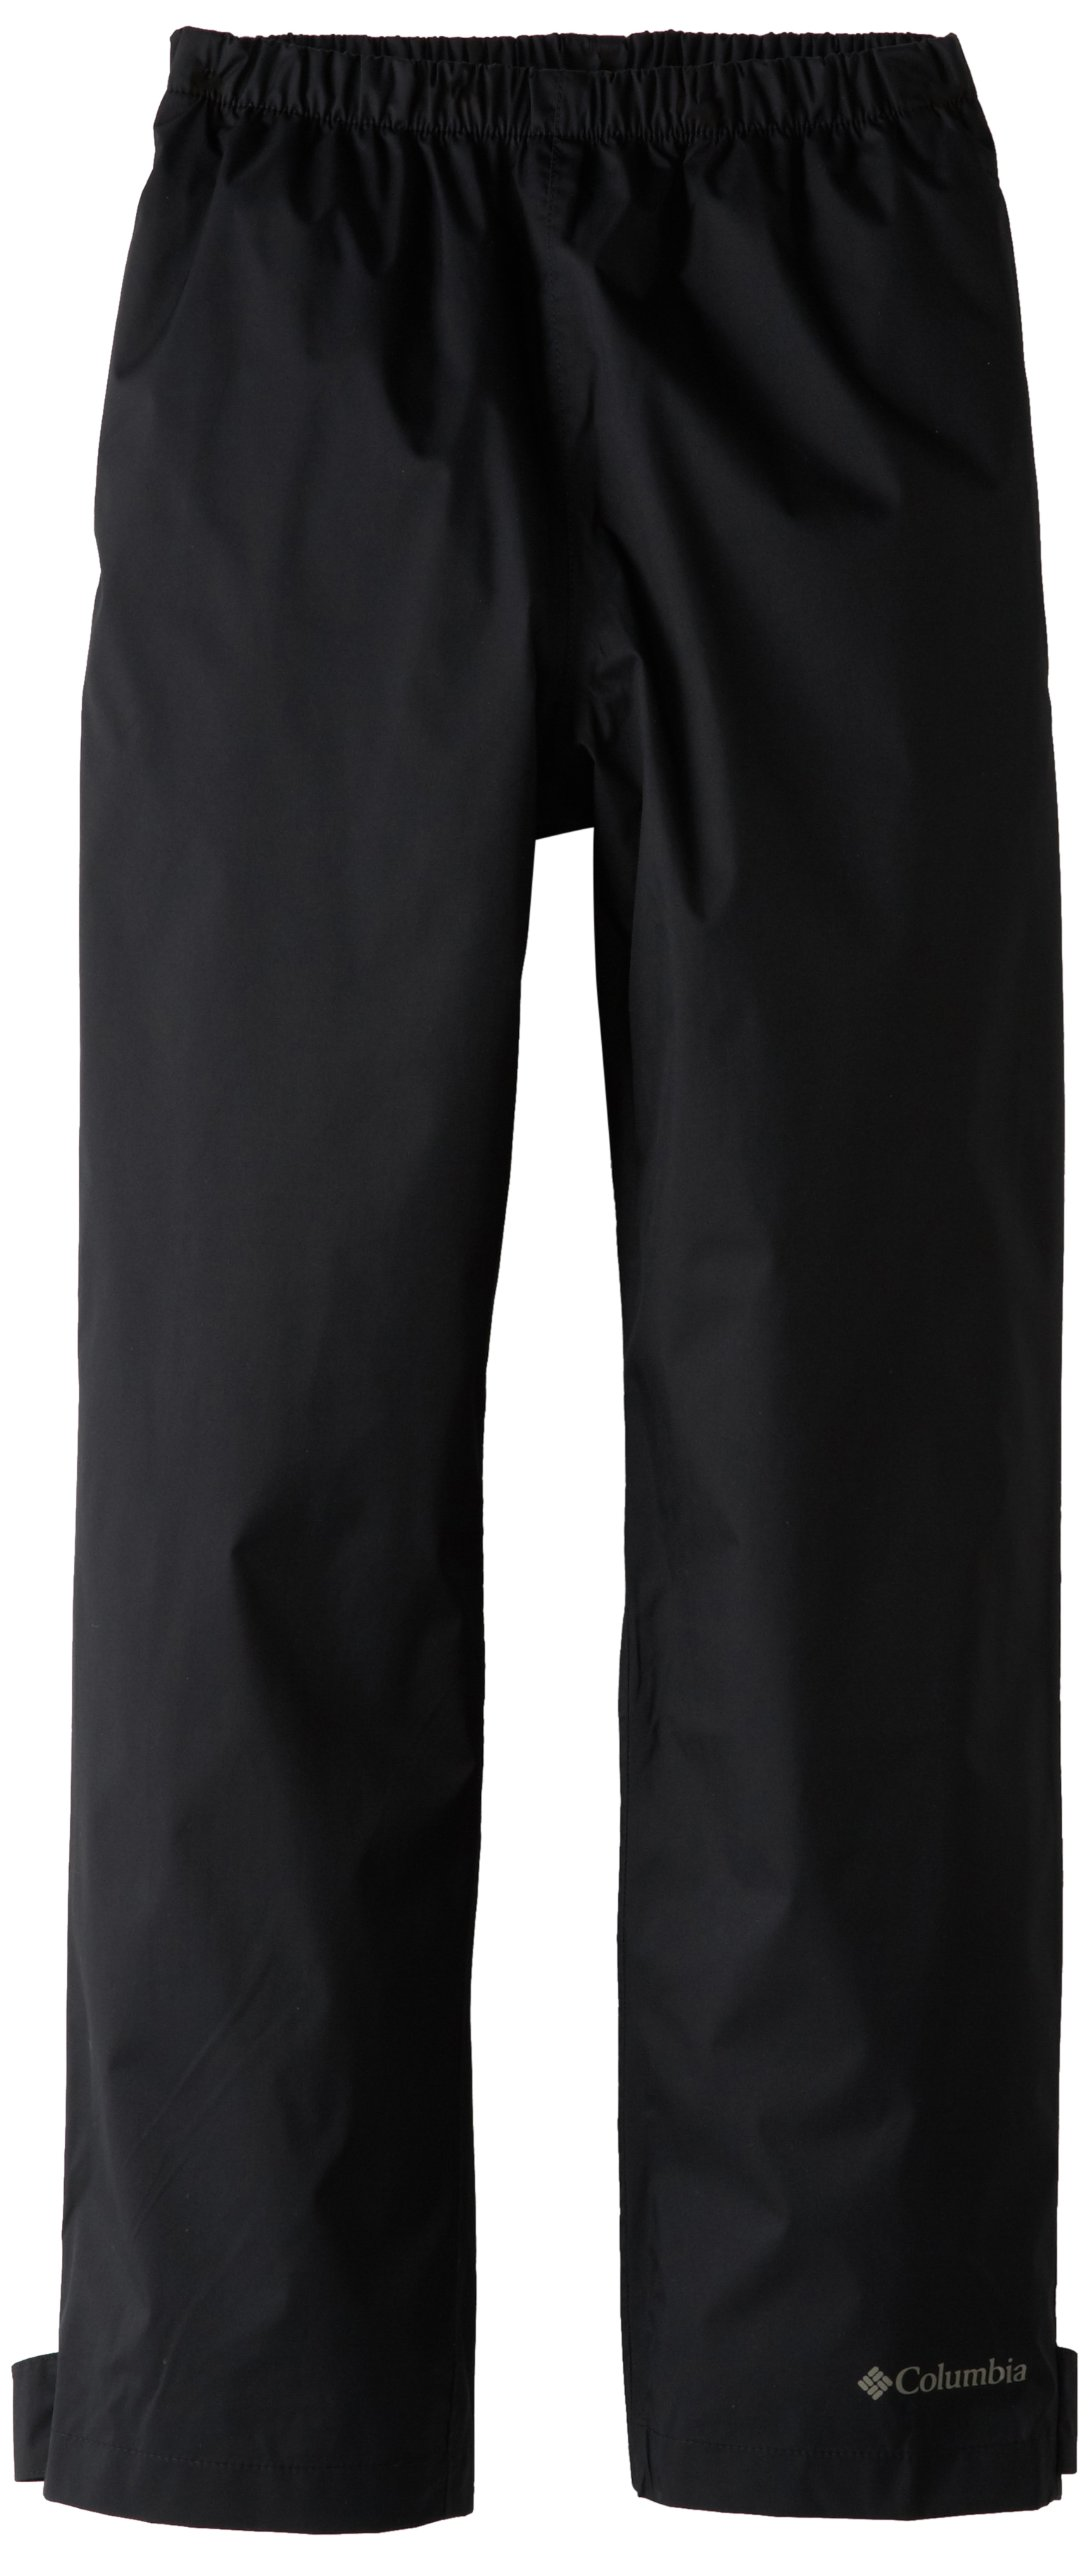 Columbia Big Boys' Trail Adventure Pant, Black, Large